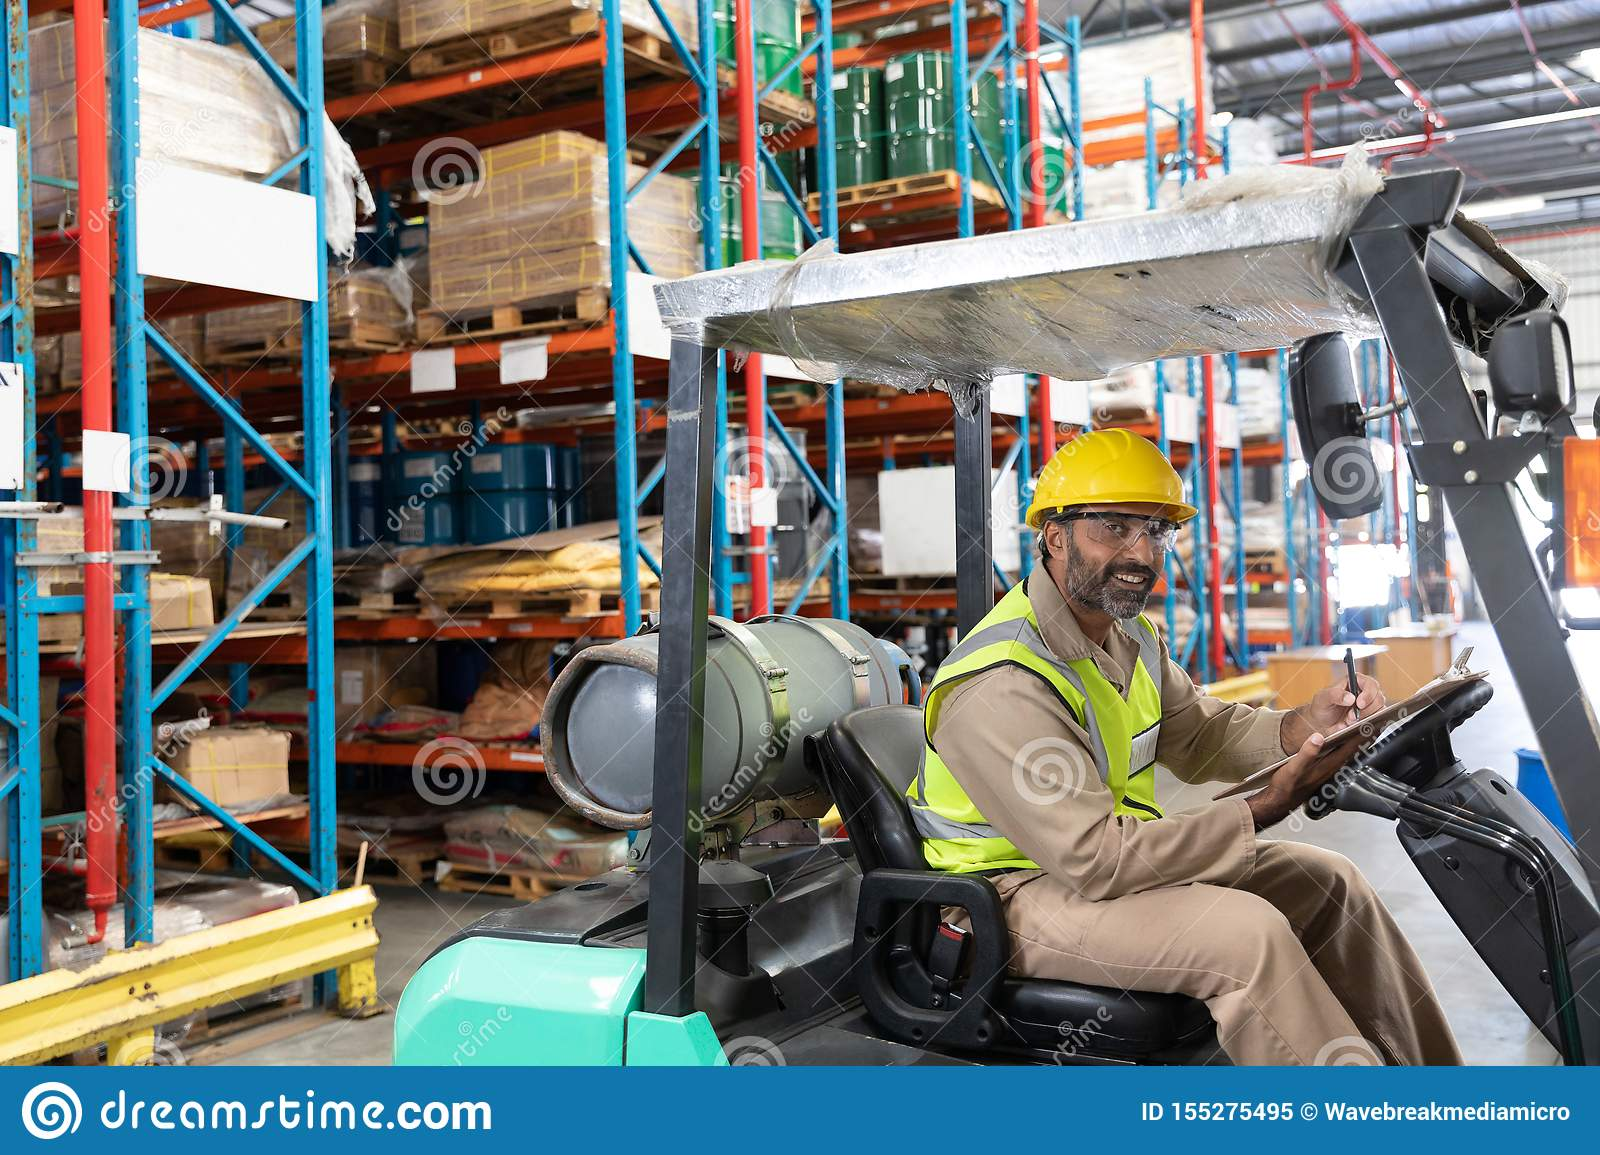 Male staff writing on clipboard while sitting on forklift in warehouse